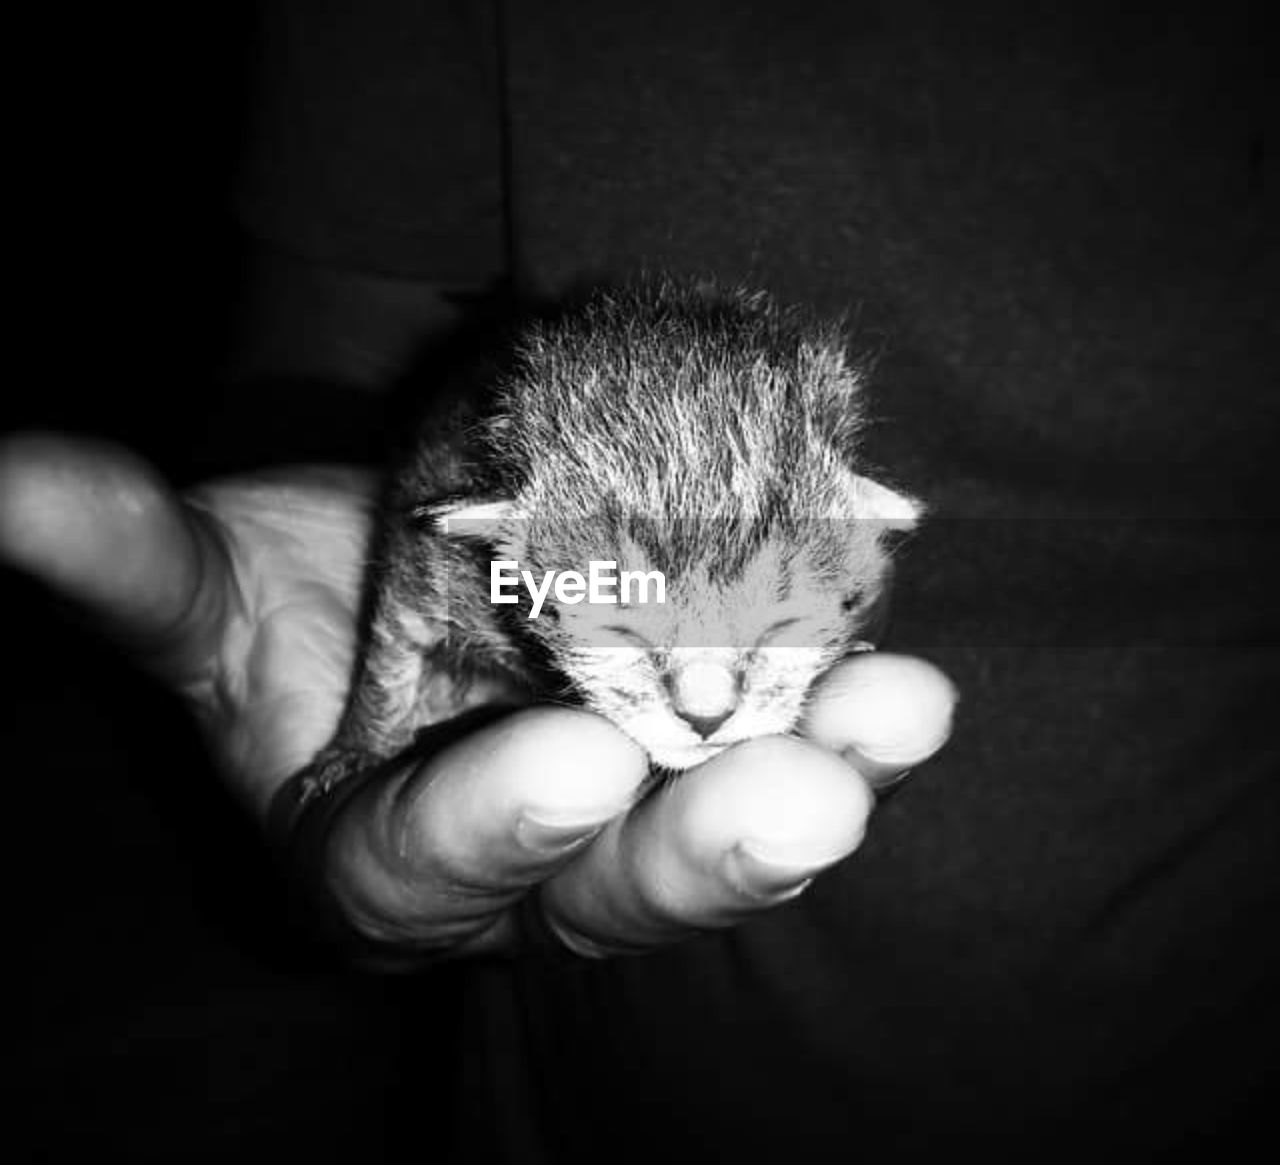 human hand, human body part, holding, cute, one person, real people, indoors, animal themes, domestic animals, love, one animal, young animal, pets, mammal, care, newborn, hedgehog, close-up, fragility, day, people